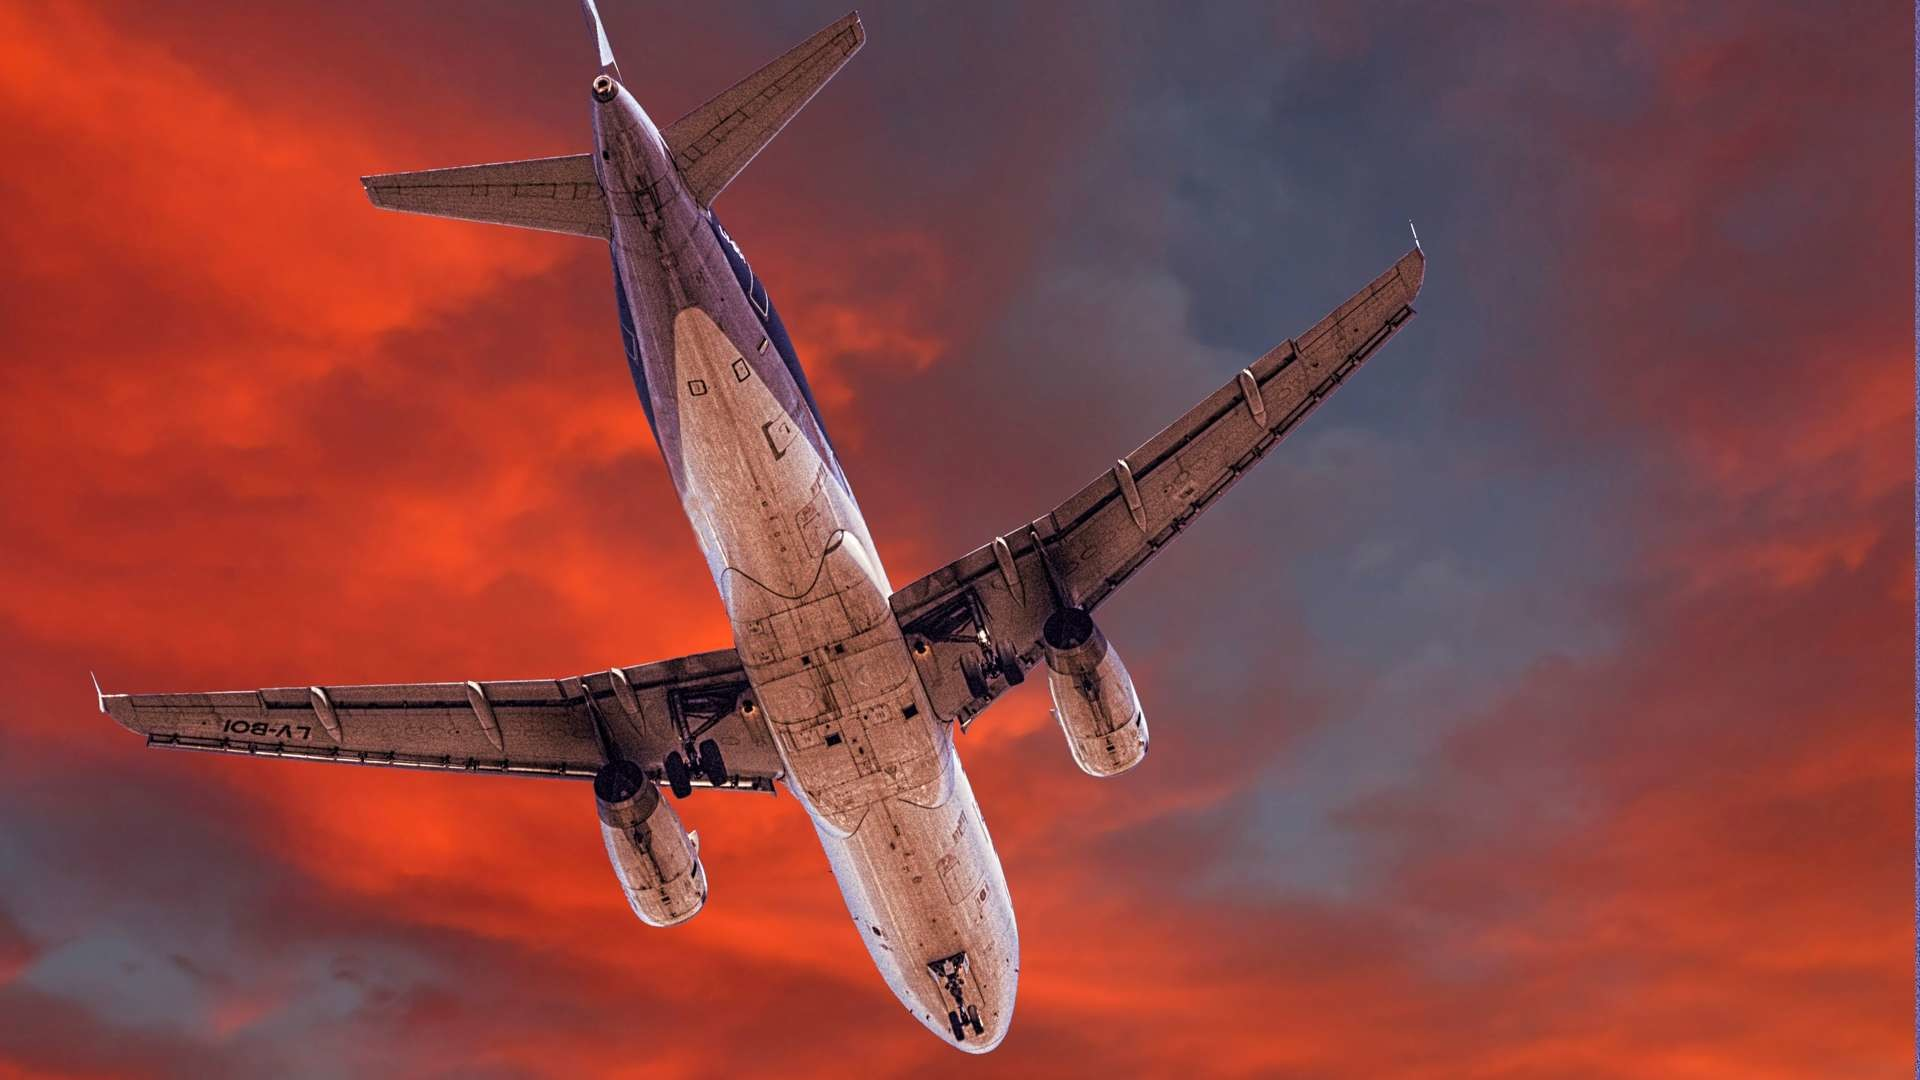 1920x1080 Airbus A380 LVB01 HD Wallpaper. « »